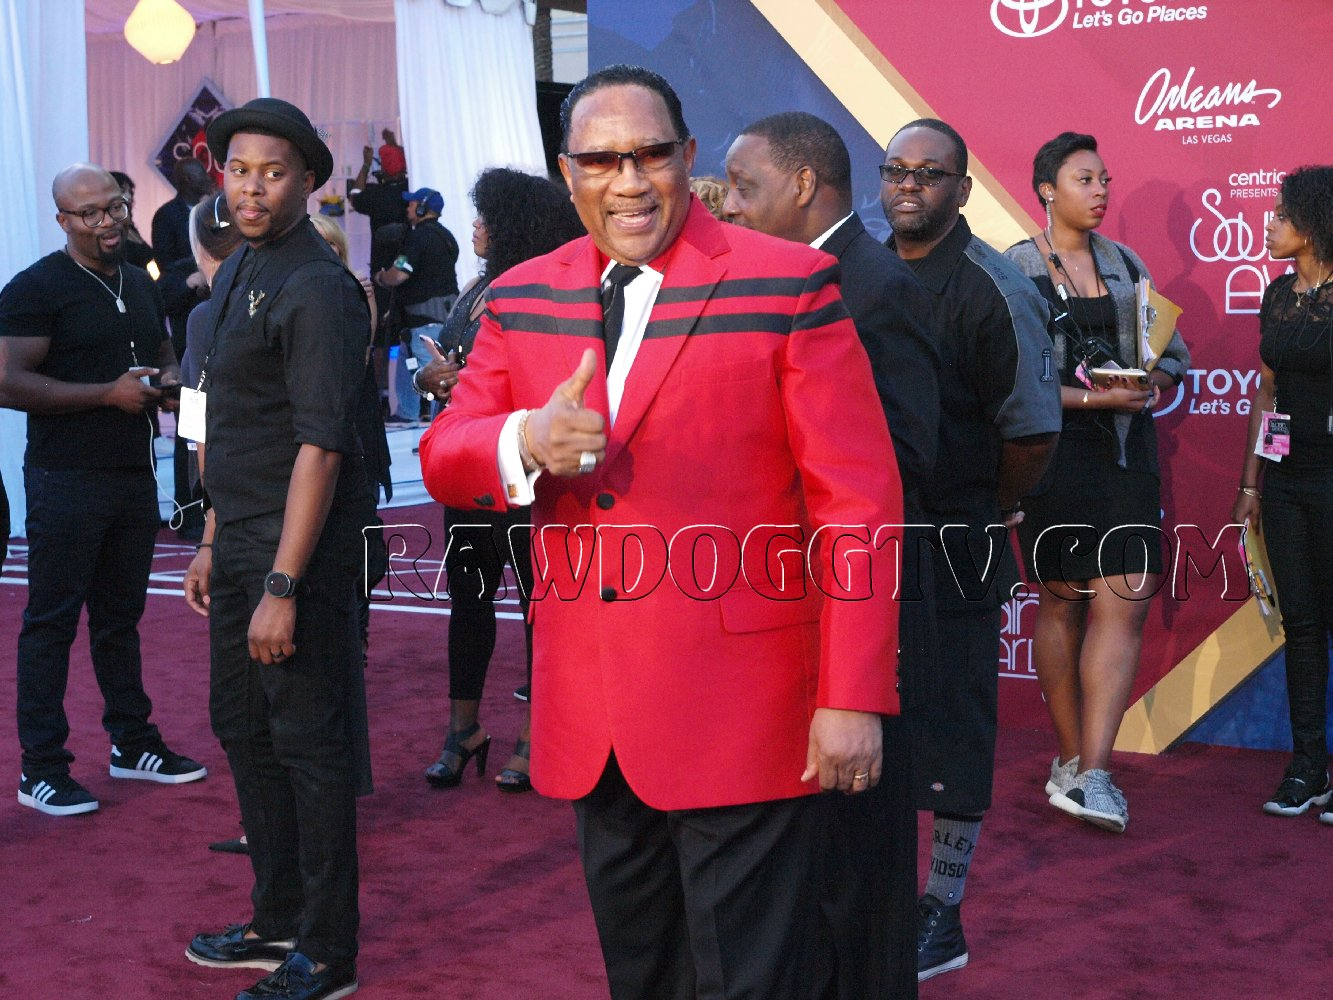 soul-train-music-awards-2016-photos-air-date-nov-27th-bet-centric-pr-mobilewire-305-490-2182-5